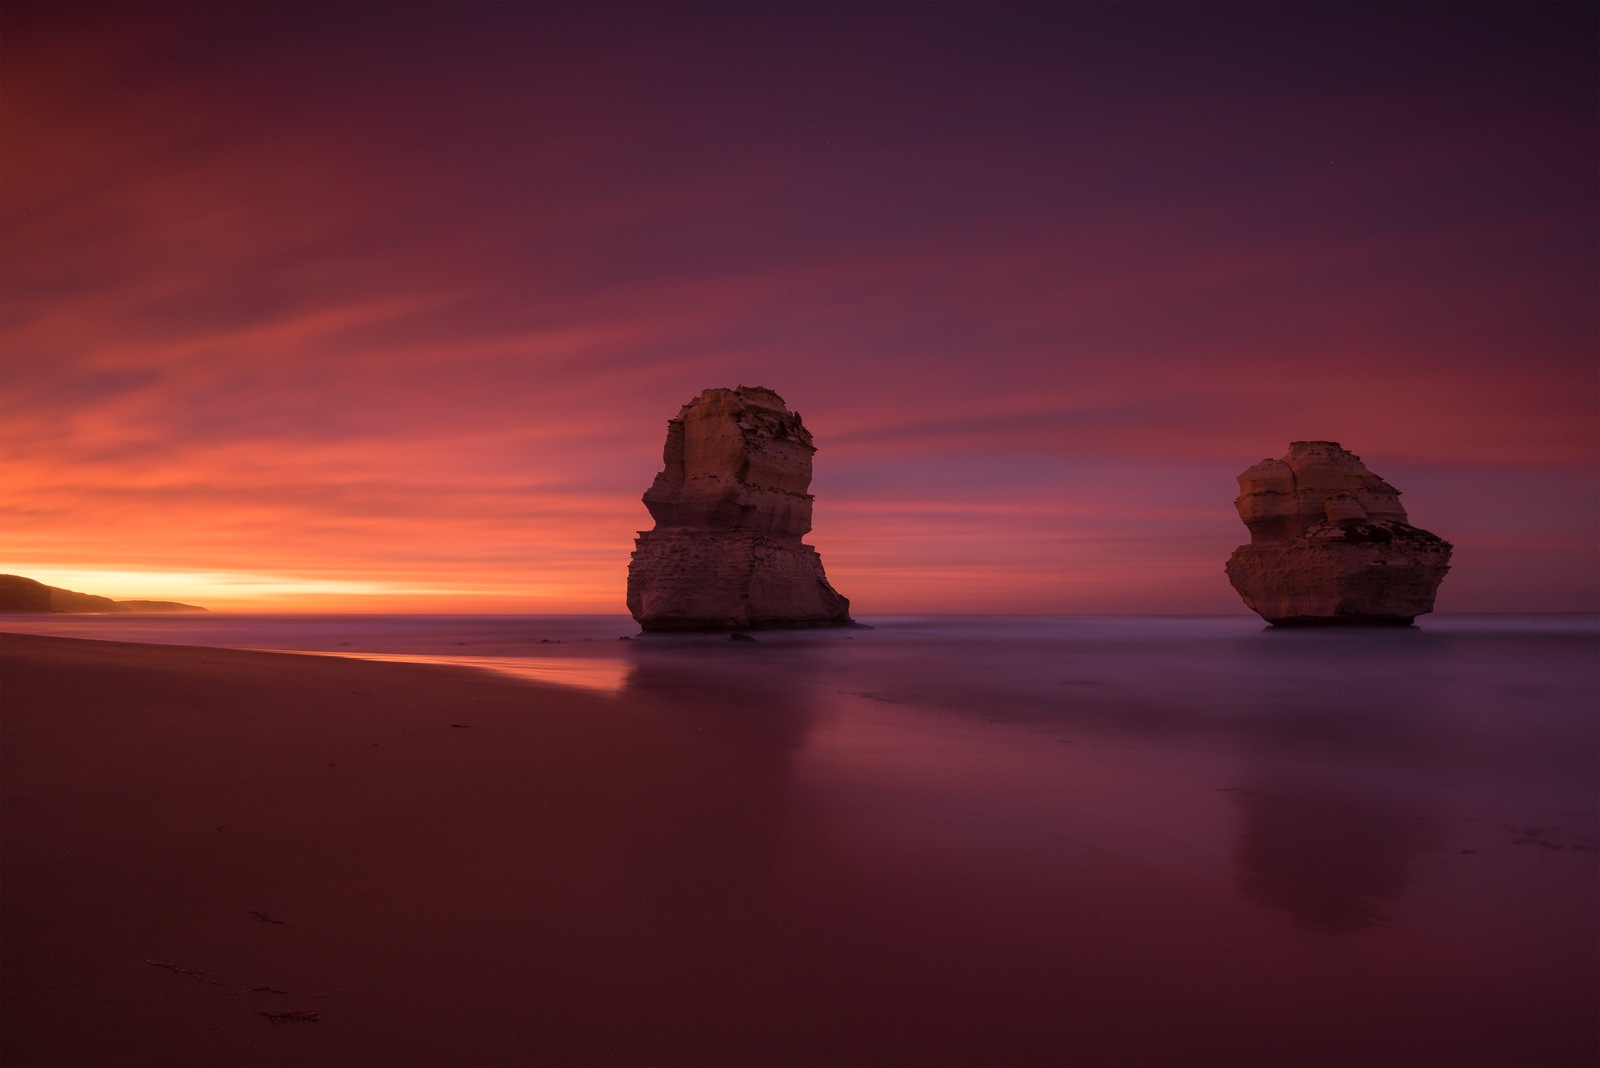 300 Seconds Of Light by CSchulstad